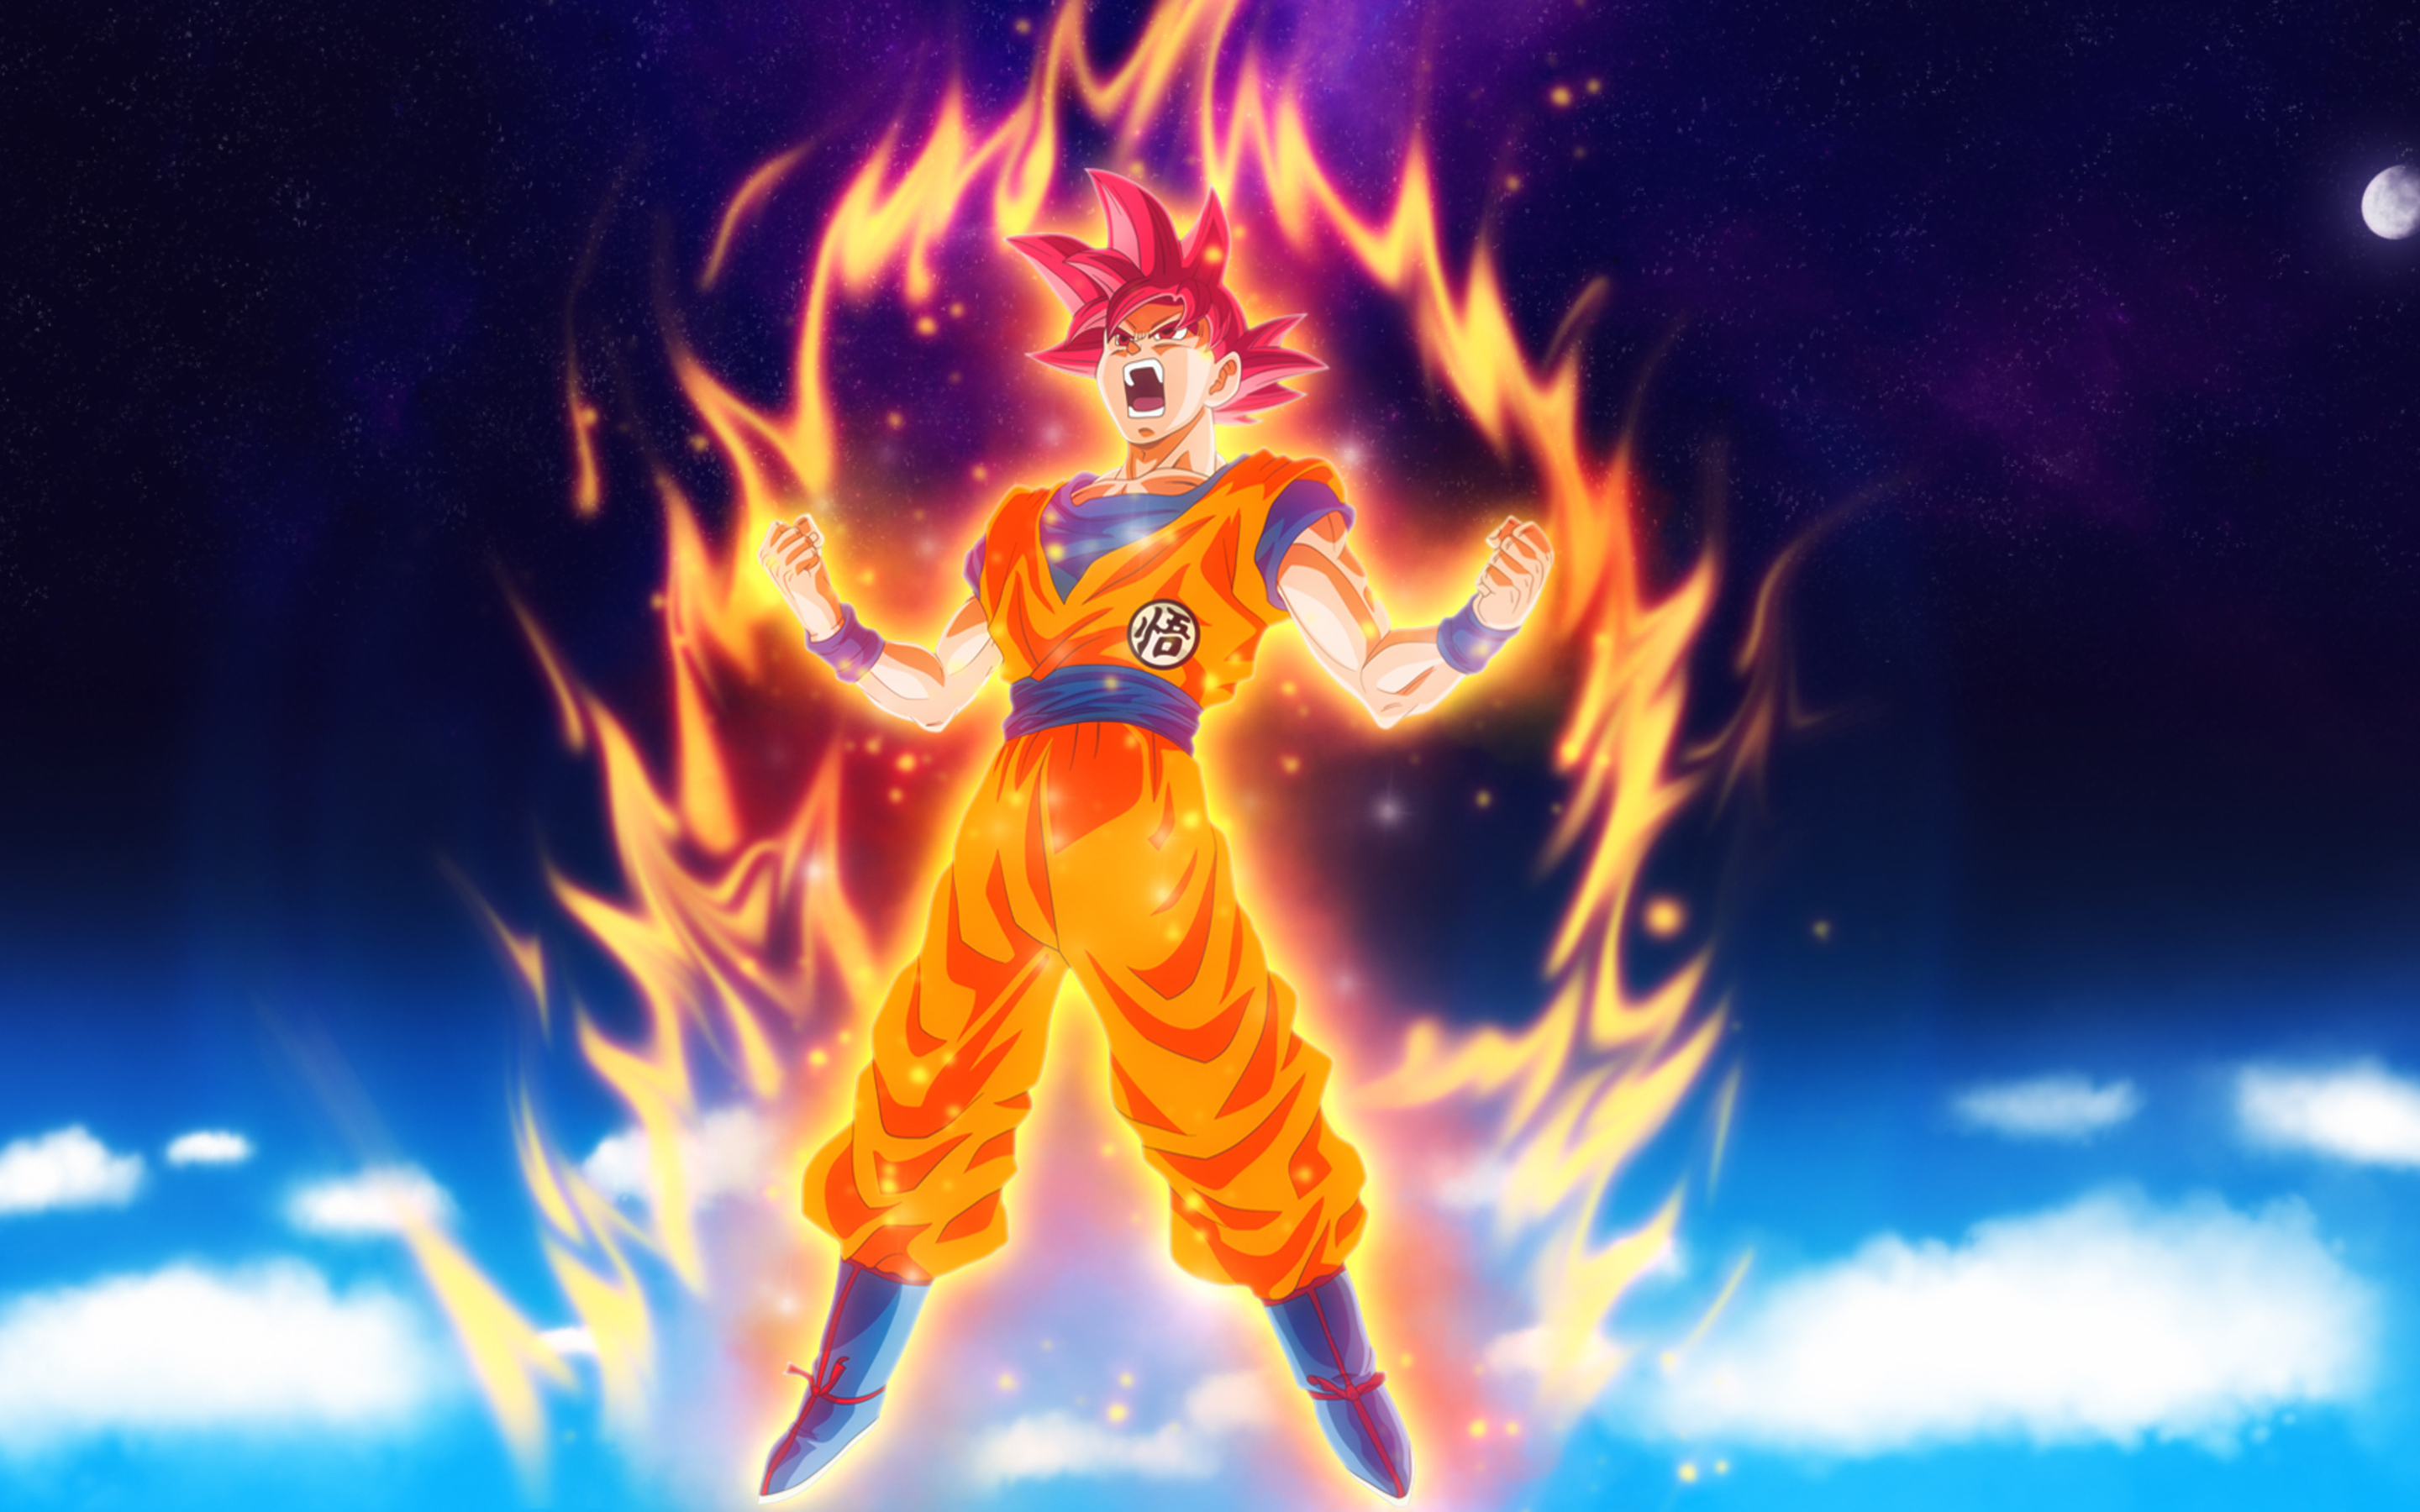 2880x1800 Dragon Ball Z Goku Macbook Pro Retina Hd 4k Wallpapers